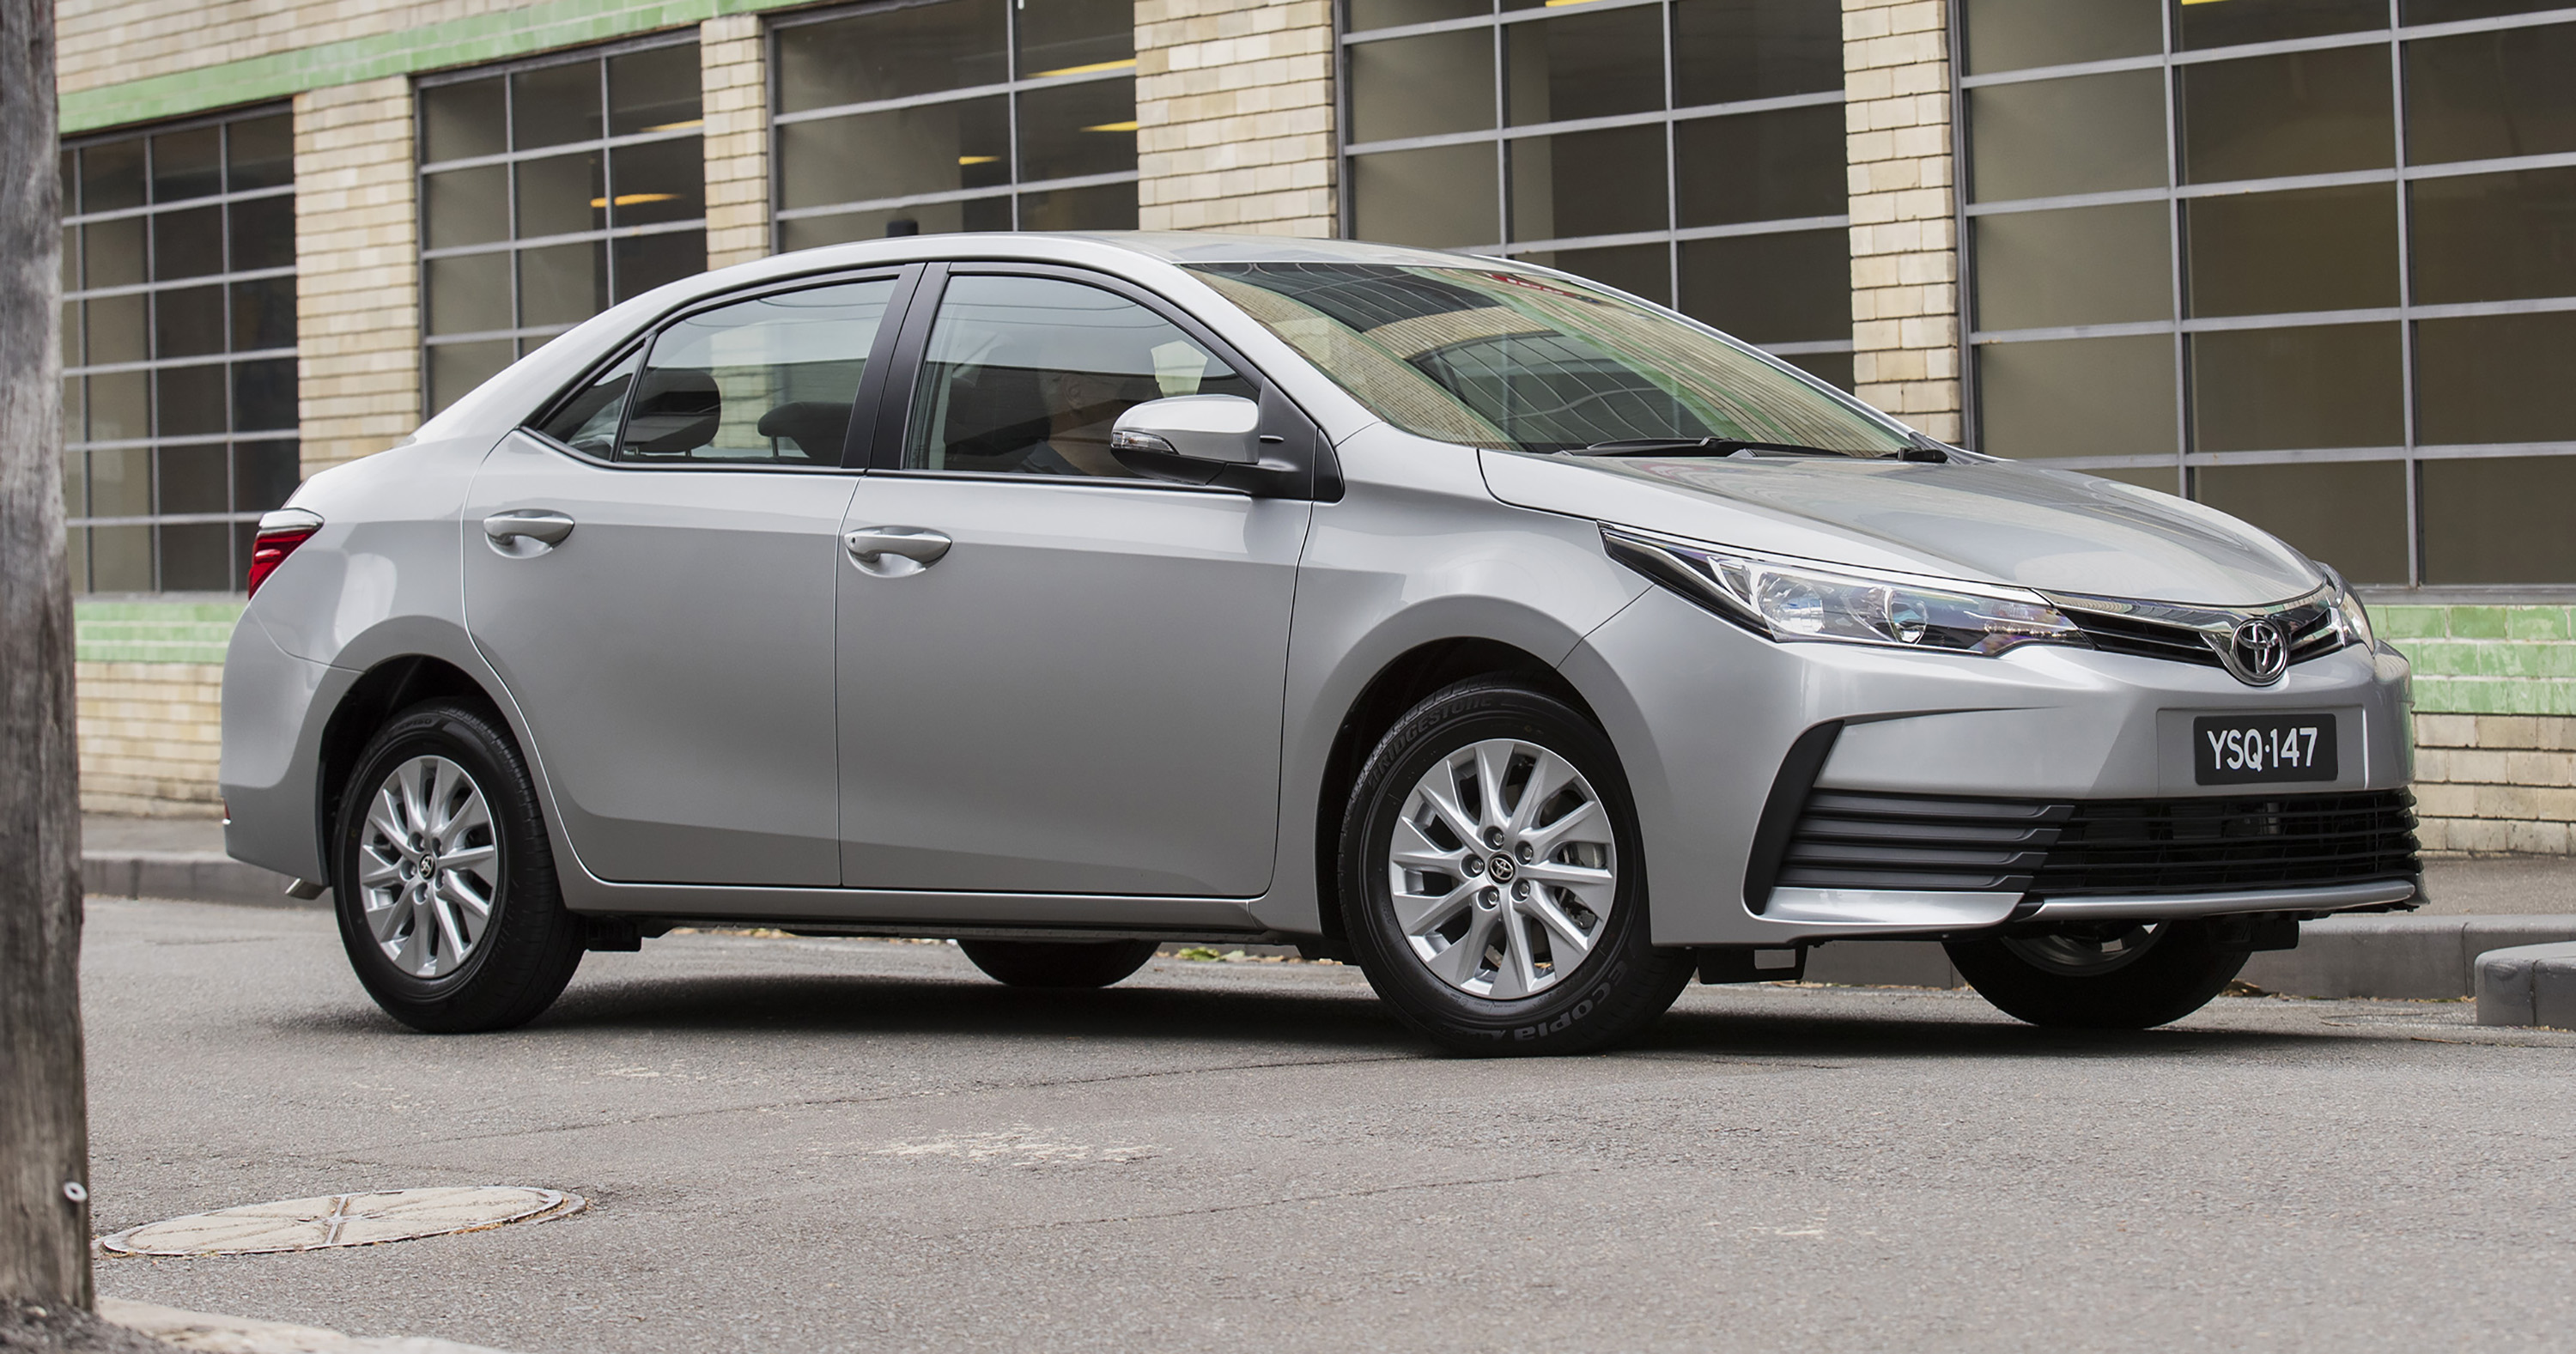 2017 toyota corolla sedan pricing and specs new looks more kit and upgraded safety photos. Black Bedroom Furniture Sets. Home Design Ideas